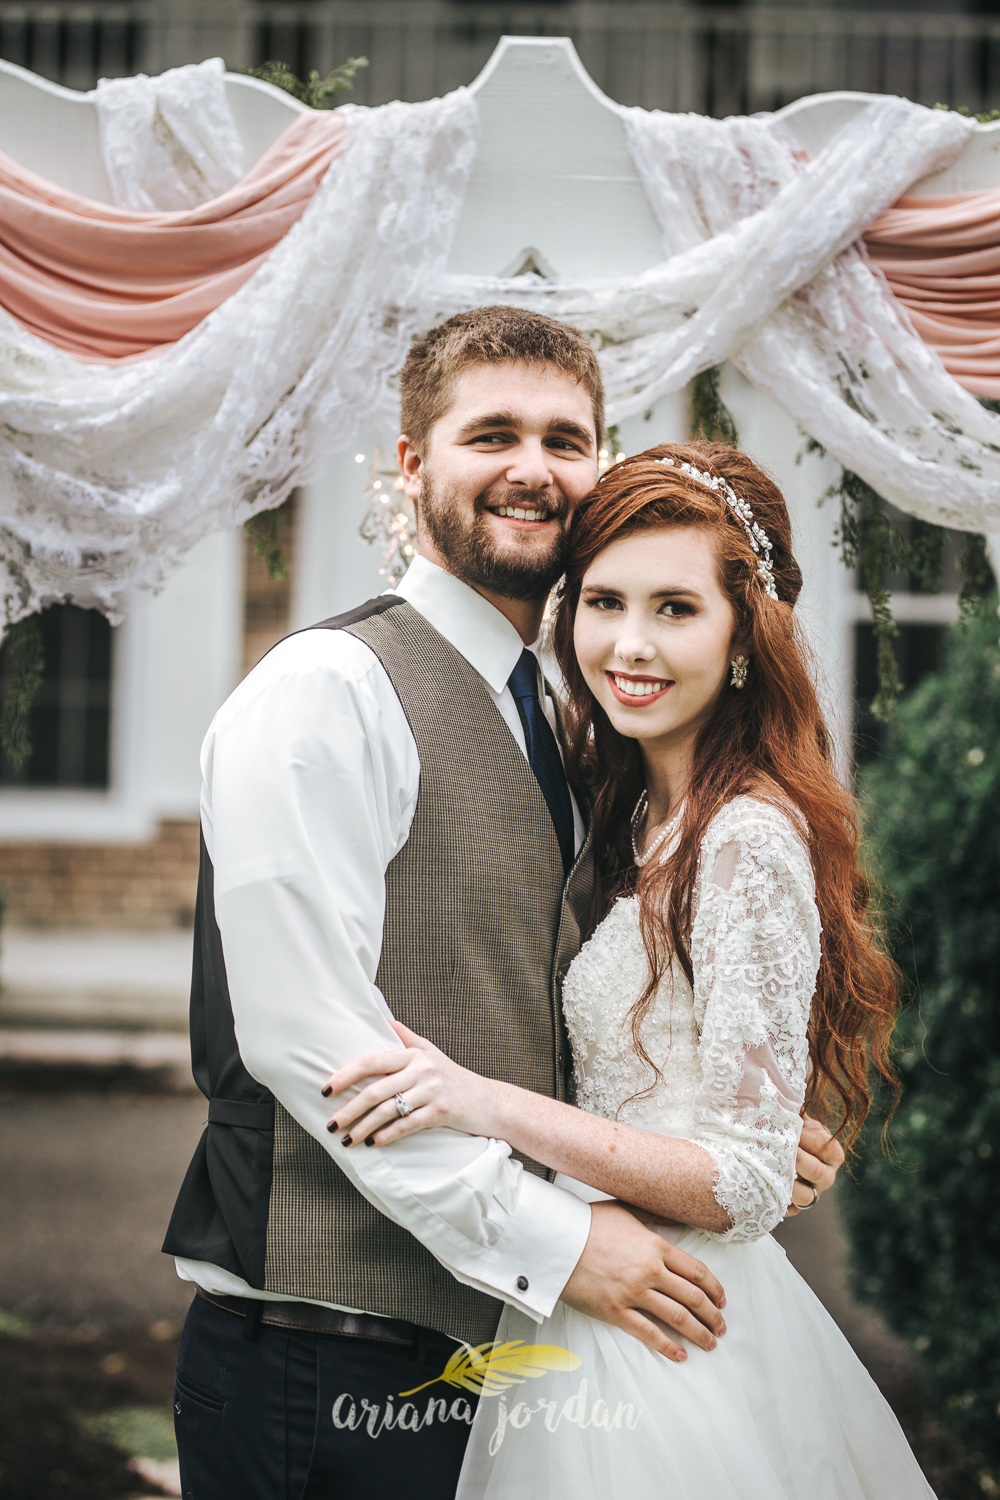 200 - Ariana Jordan - Kentucky Wedding Photographer - Landon & Tabitha_.jpg